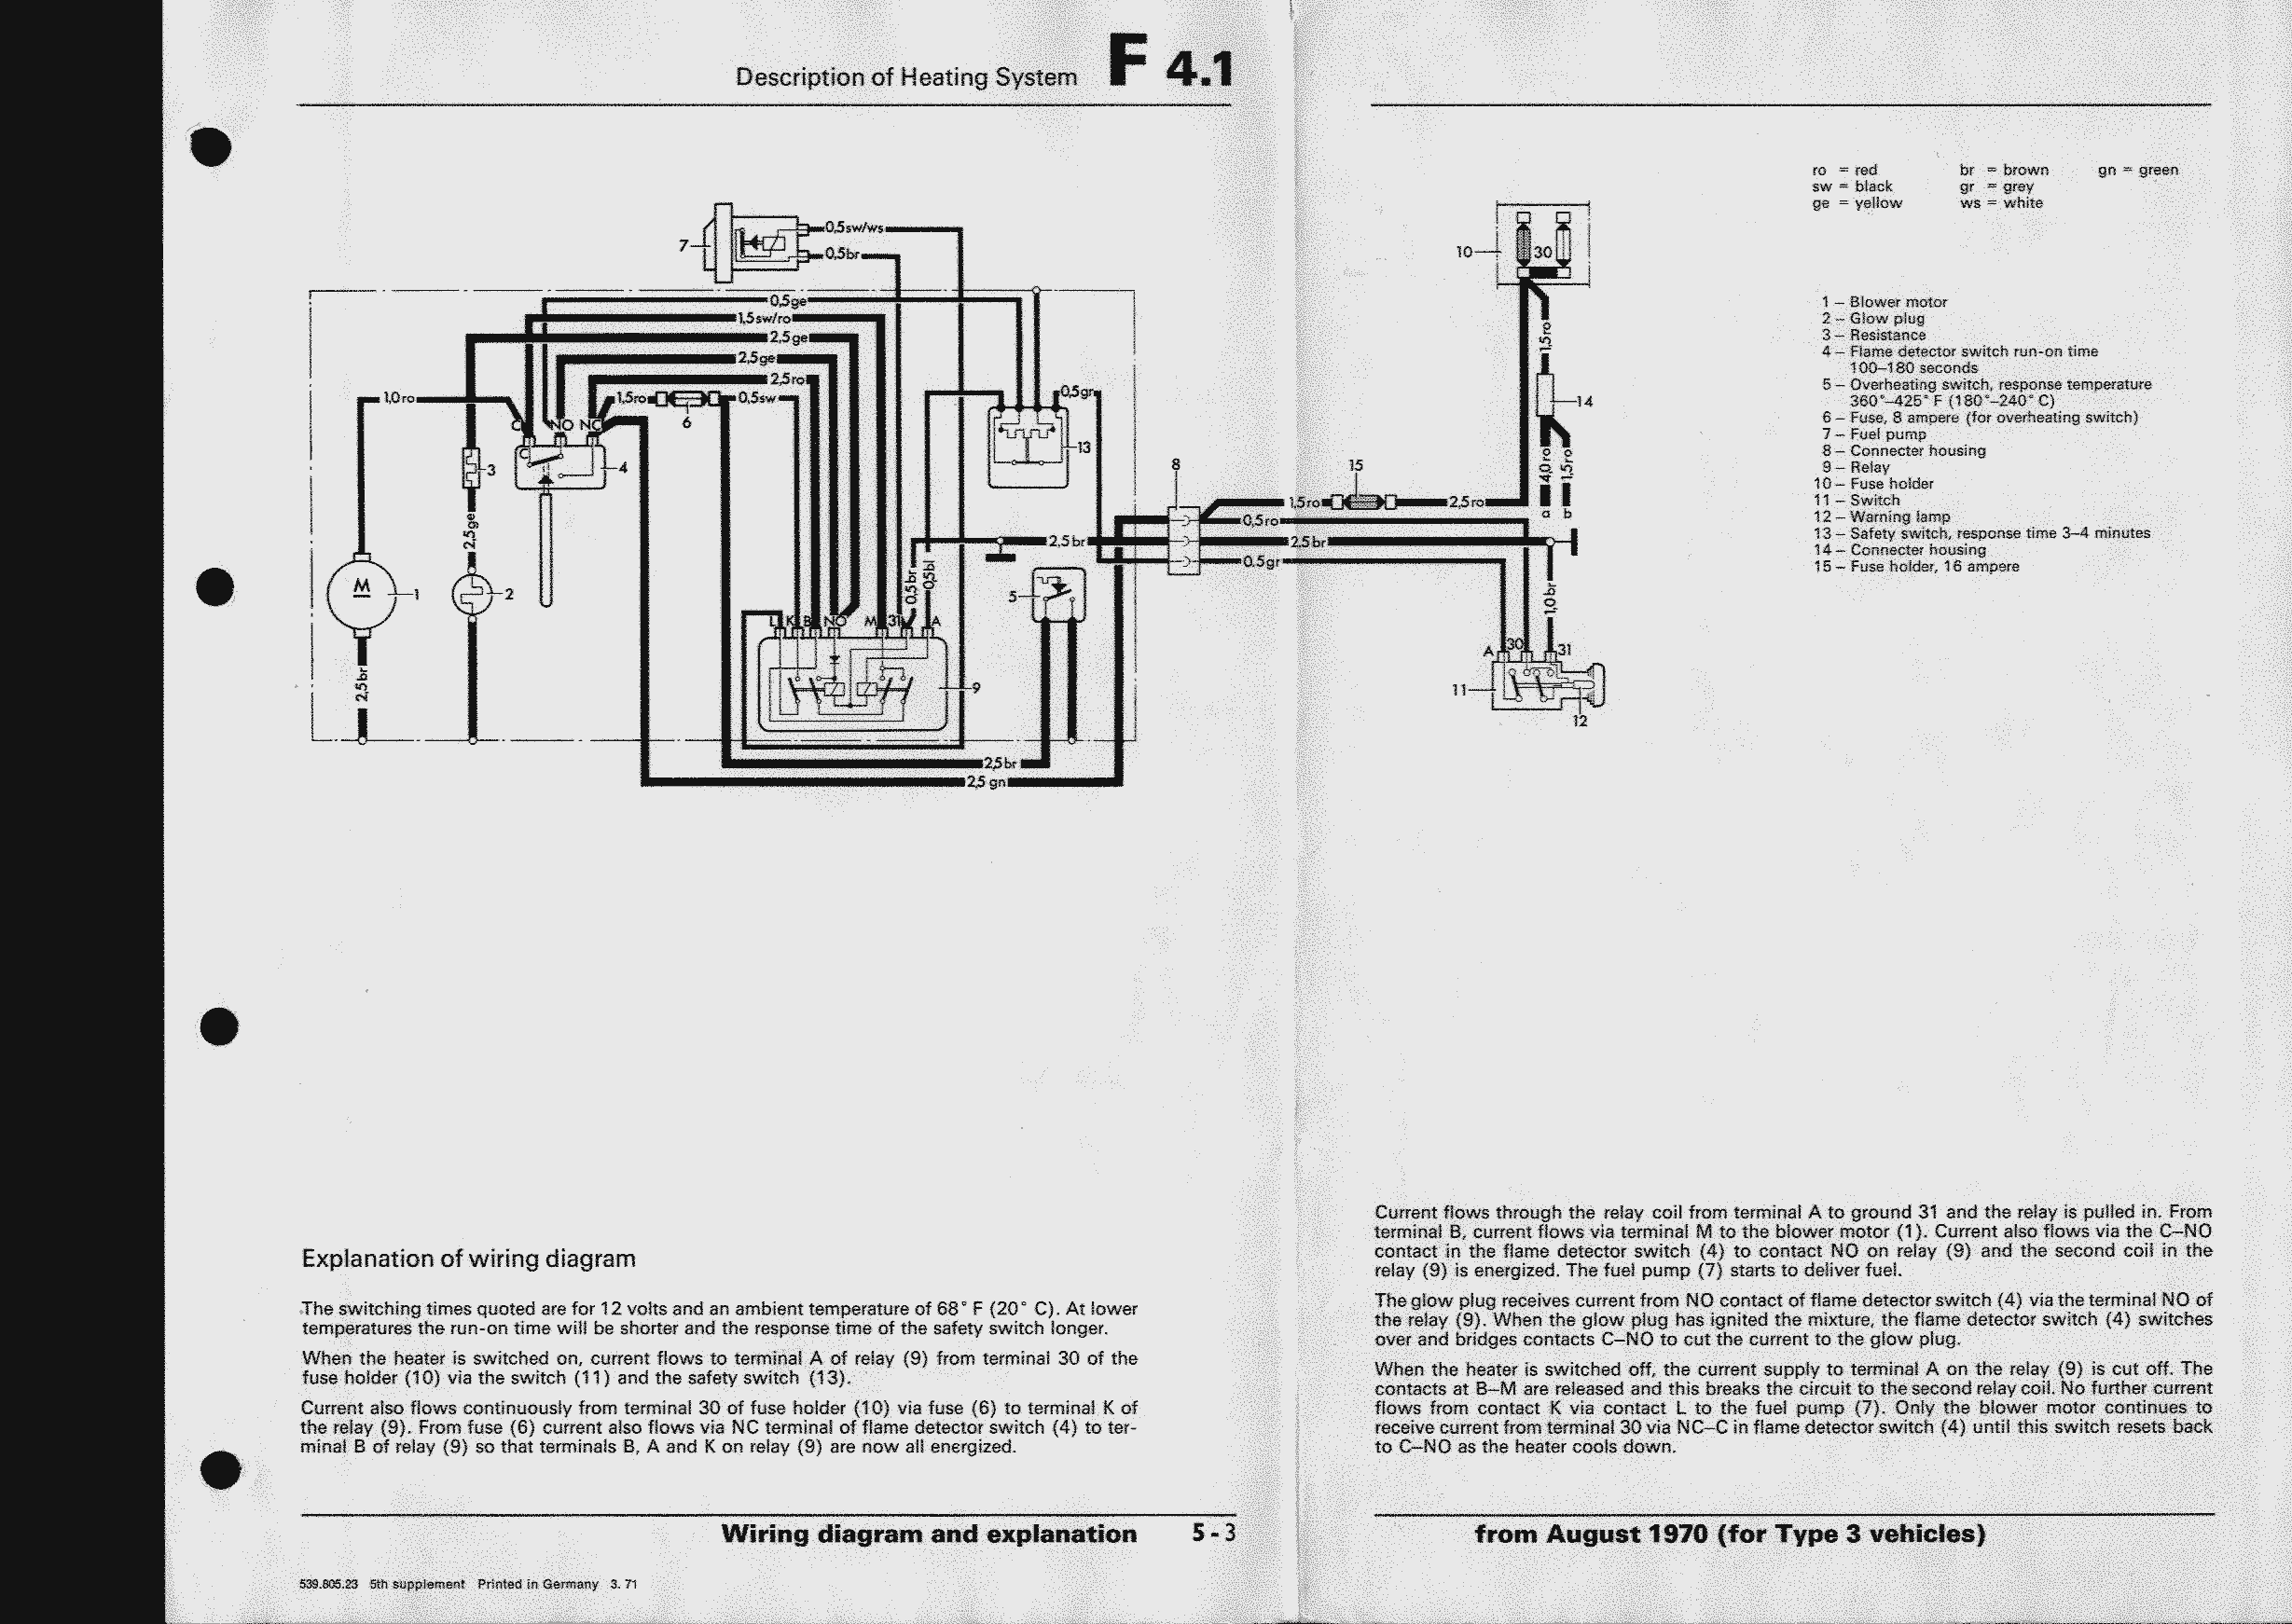 089 obsolete air cooled documentation project vw workshop manual eberspacher wiring diagram at n-0.co